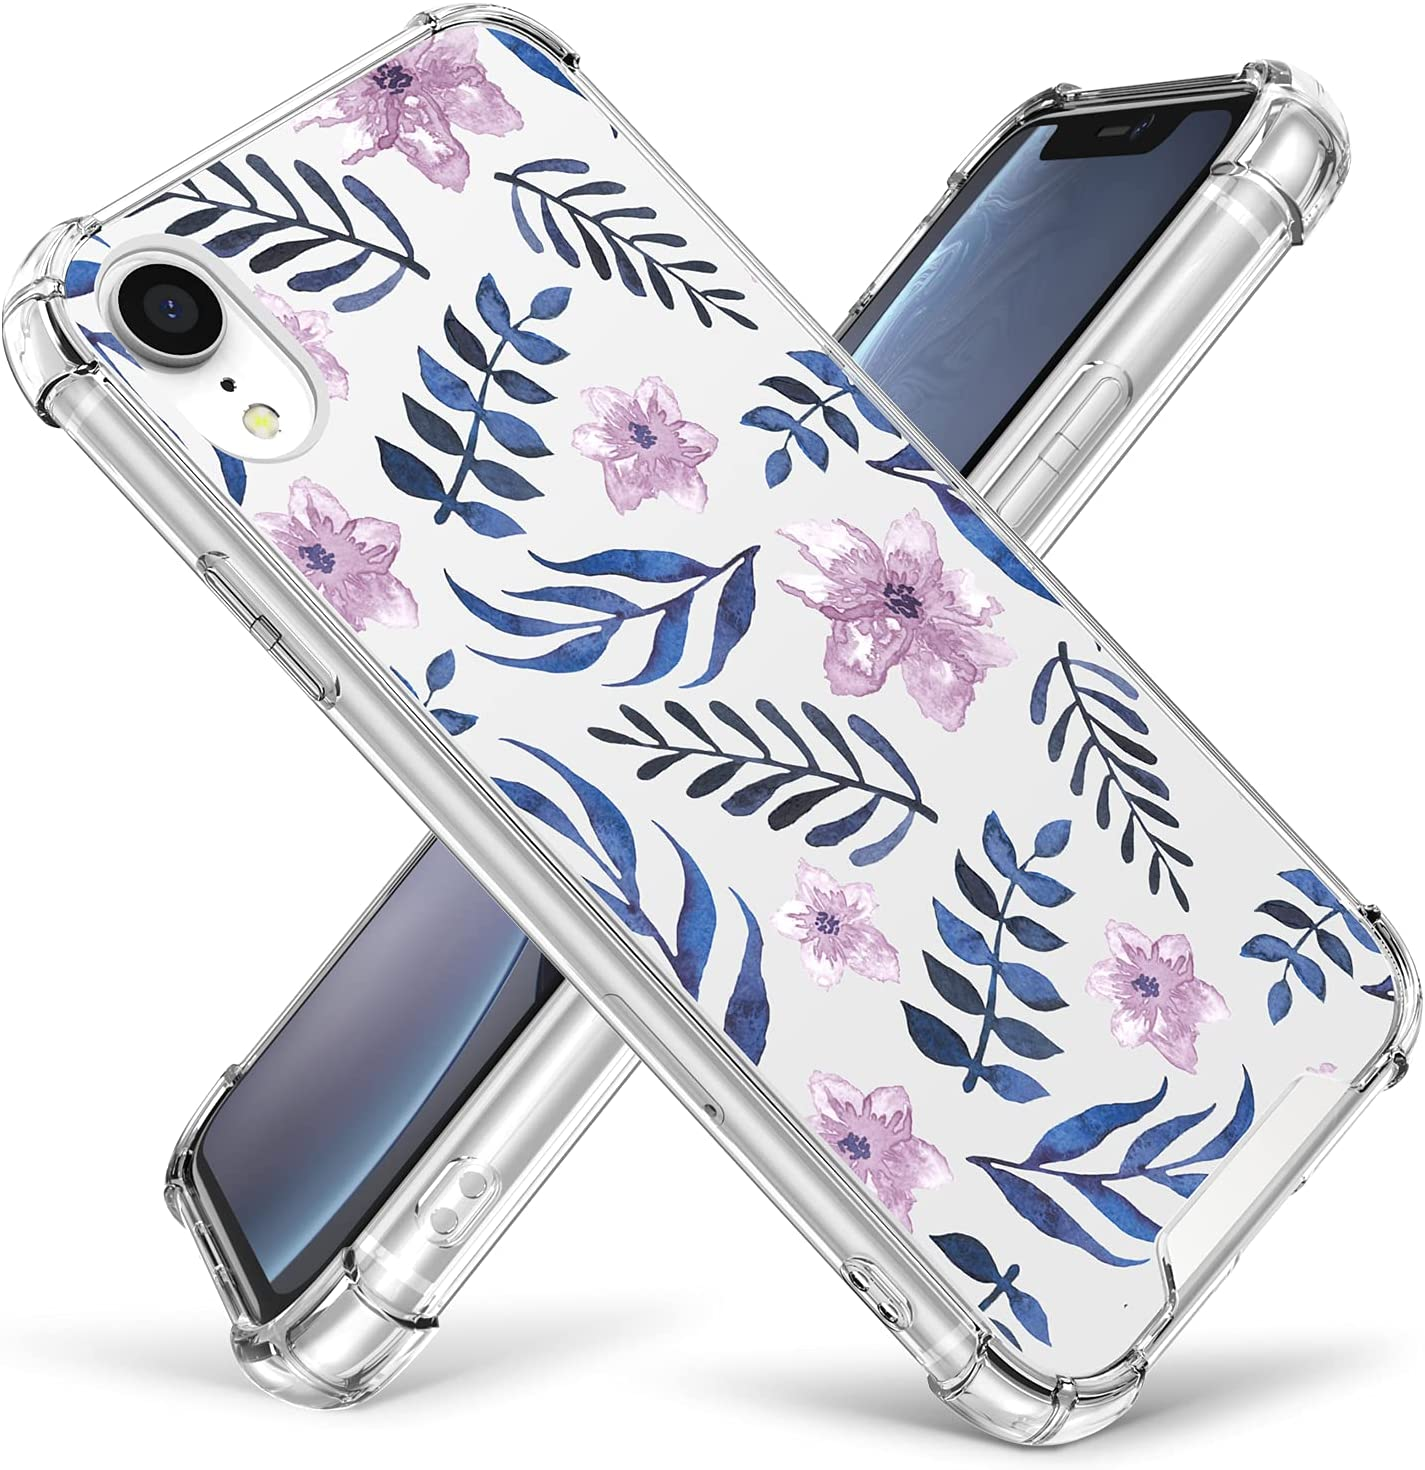 Case for iPhone XR,Cutebe Shockproof Series Hard PC+ TPU Bumper Protective Case for Apple iPhone XR 6.1 Inch 2018 Release Crystal (Blue Fern)